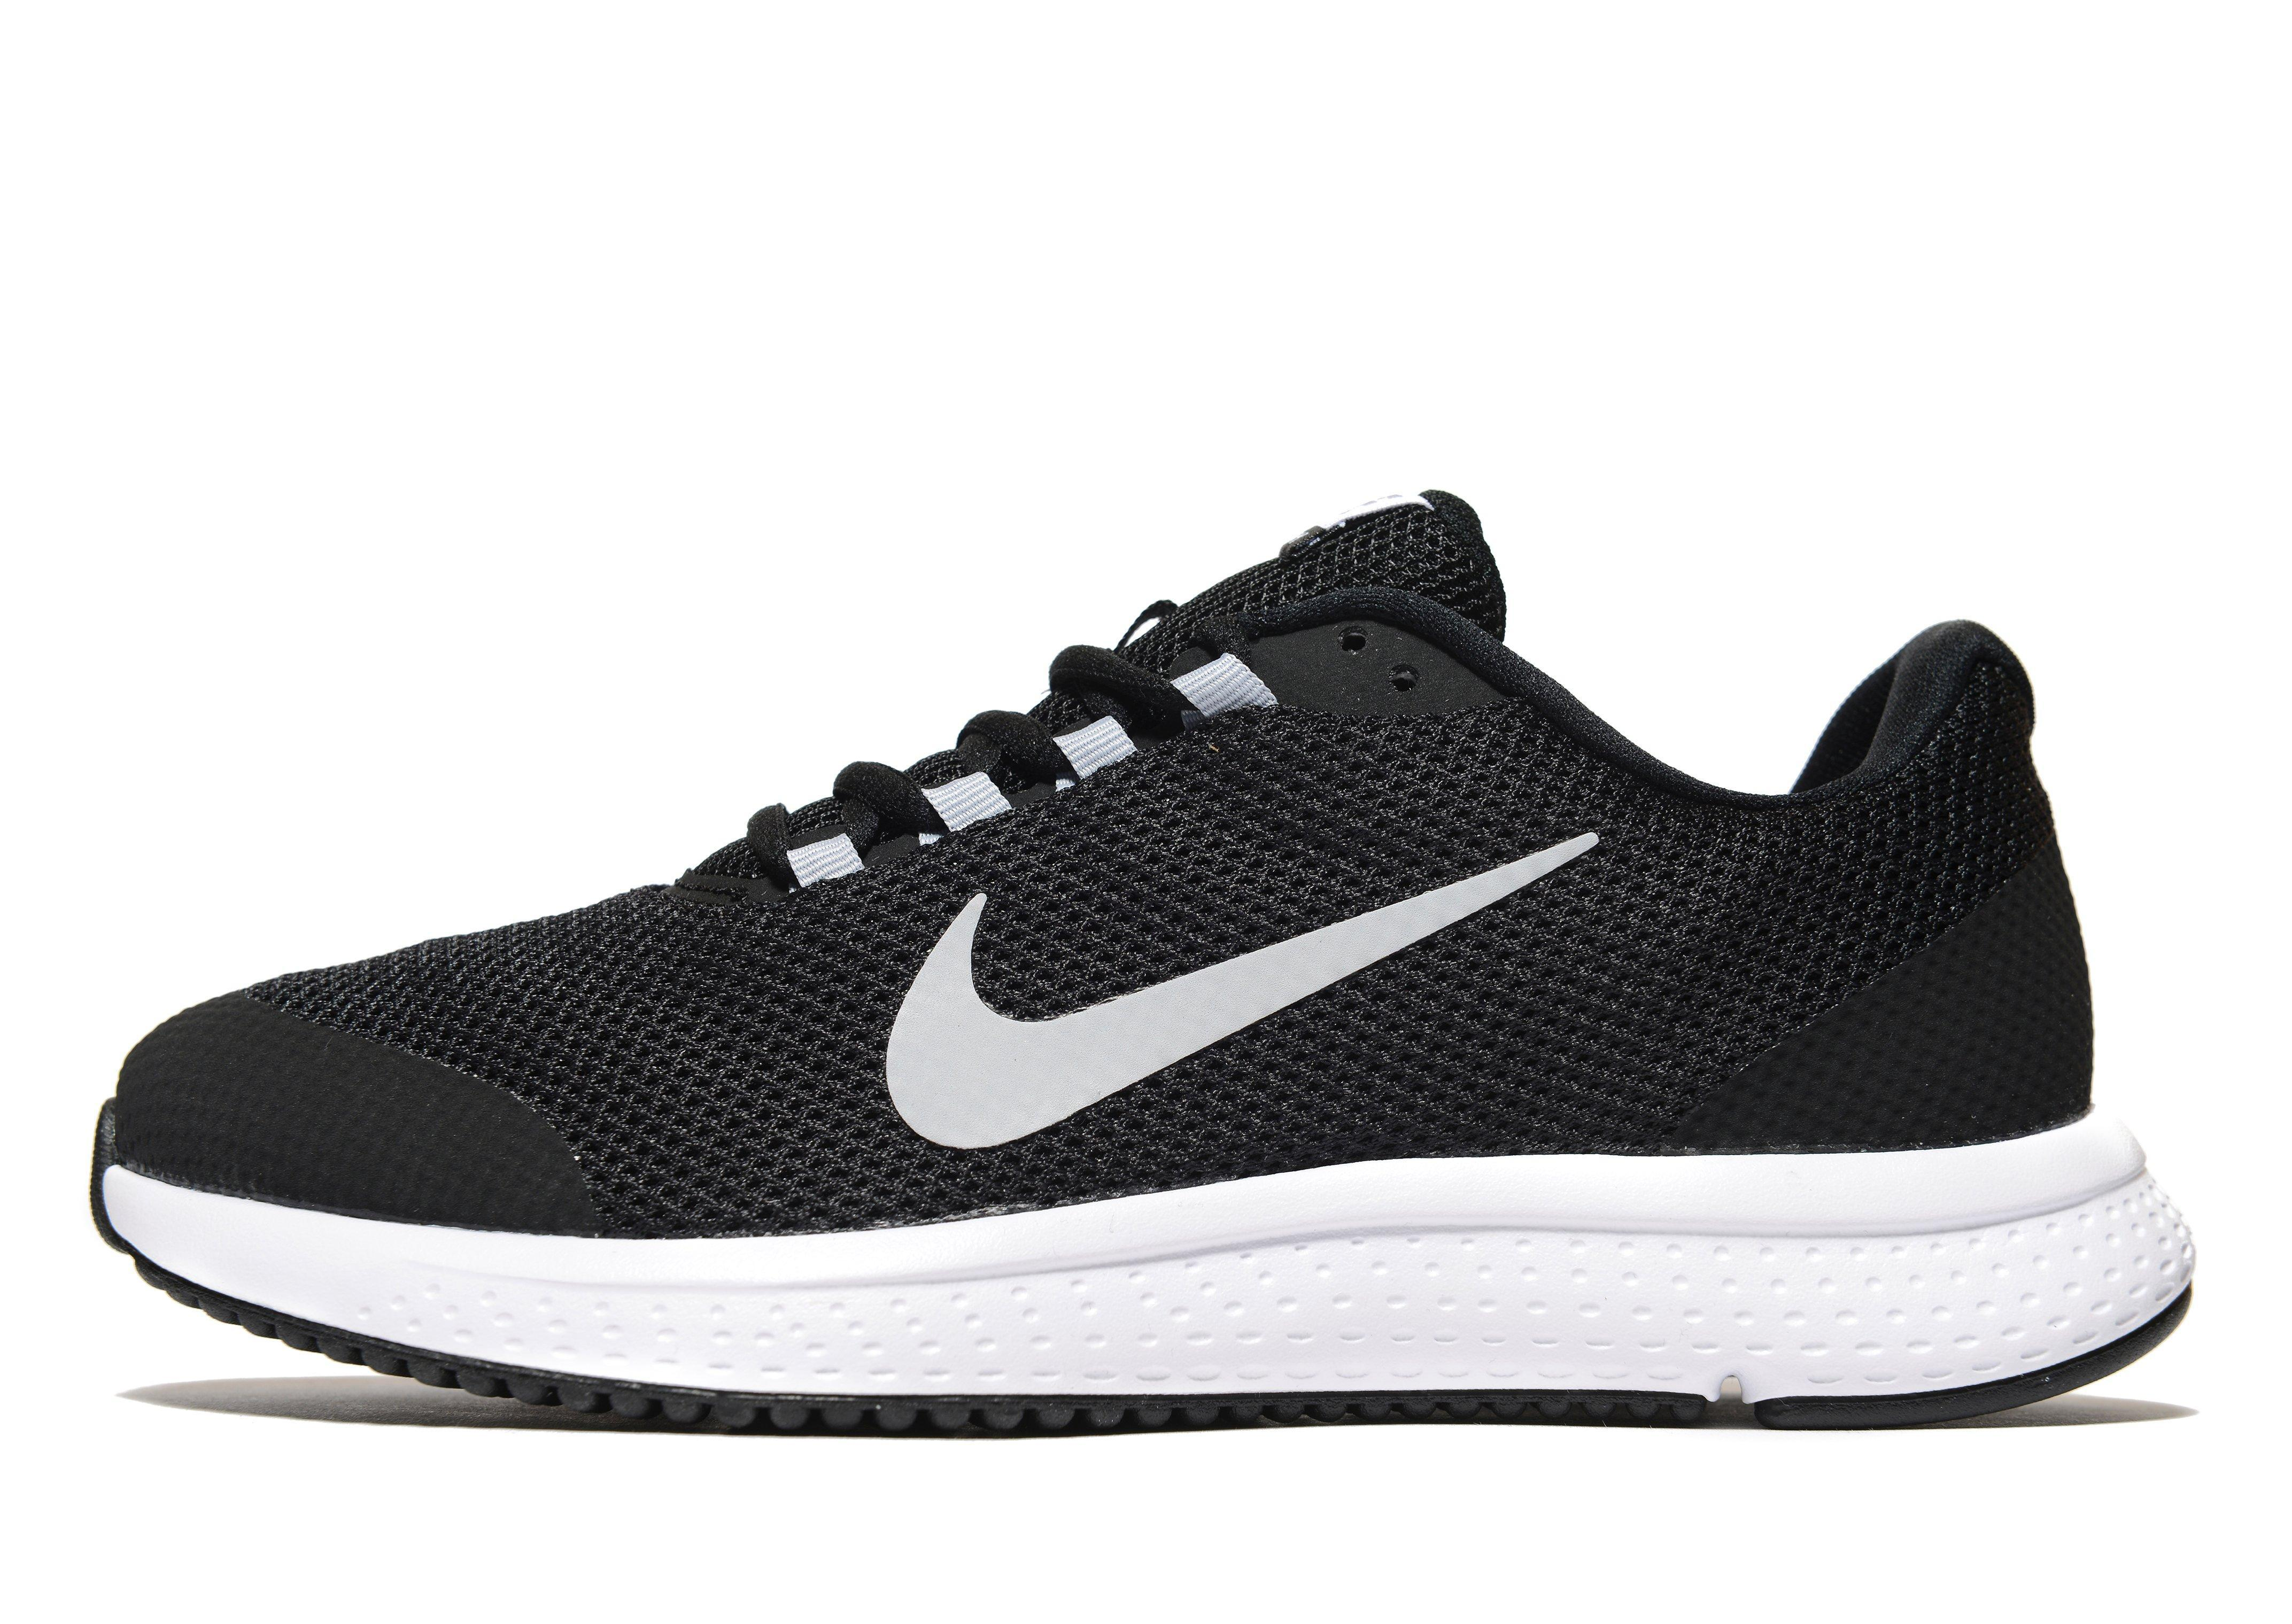 Black With Red Nike Swoosh Running Shoes